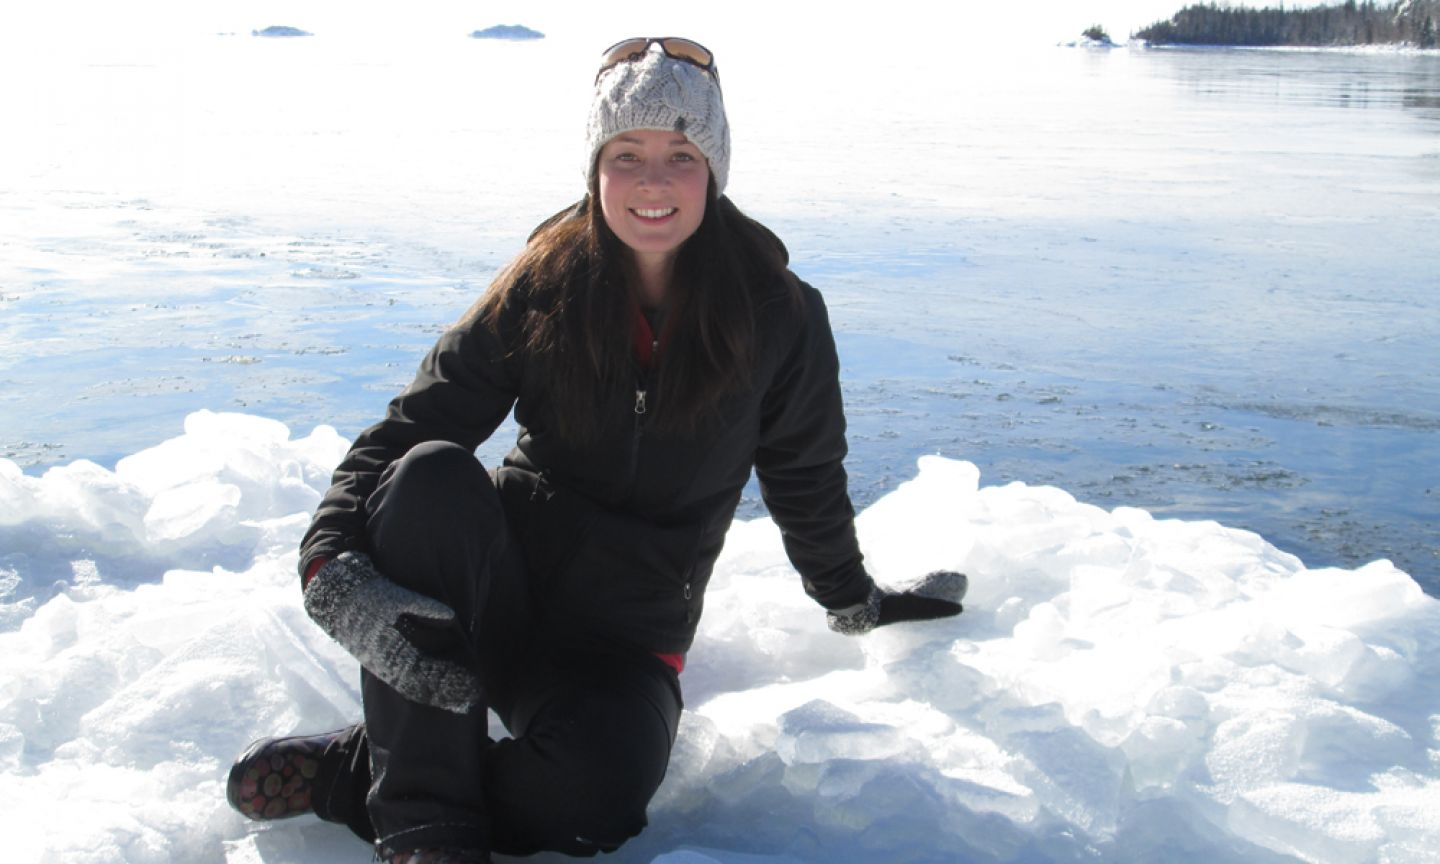 t. Kate's junior earns Rotary trip to observe healthcare practices in Finland